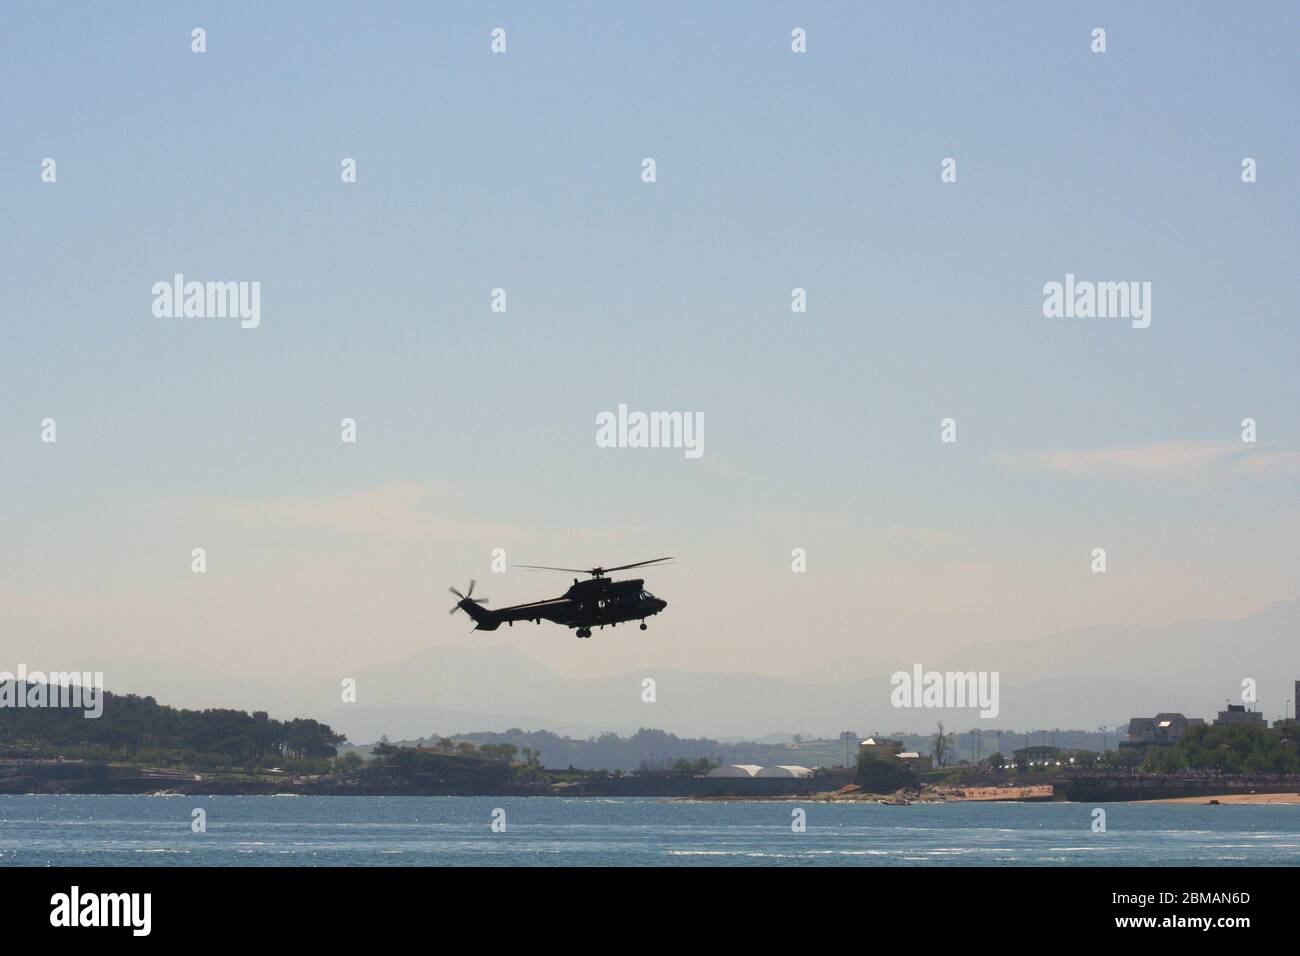 Series 33 of 165 Agusta-Bell AB 212 close up view at the Armed Forces Day Santander Spain Stock Photo